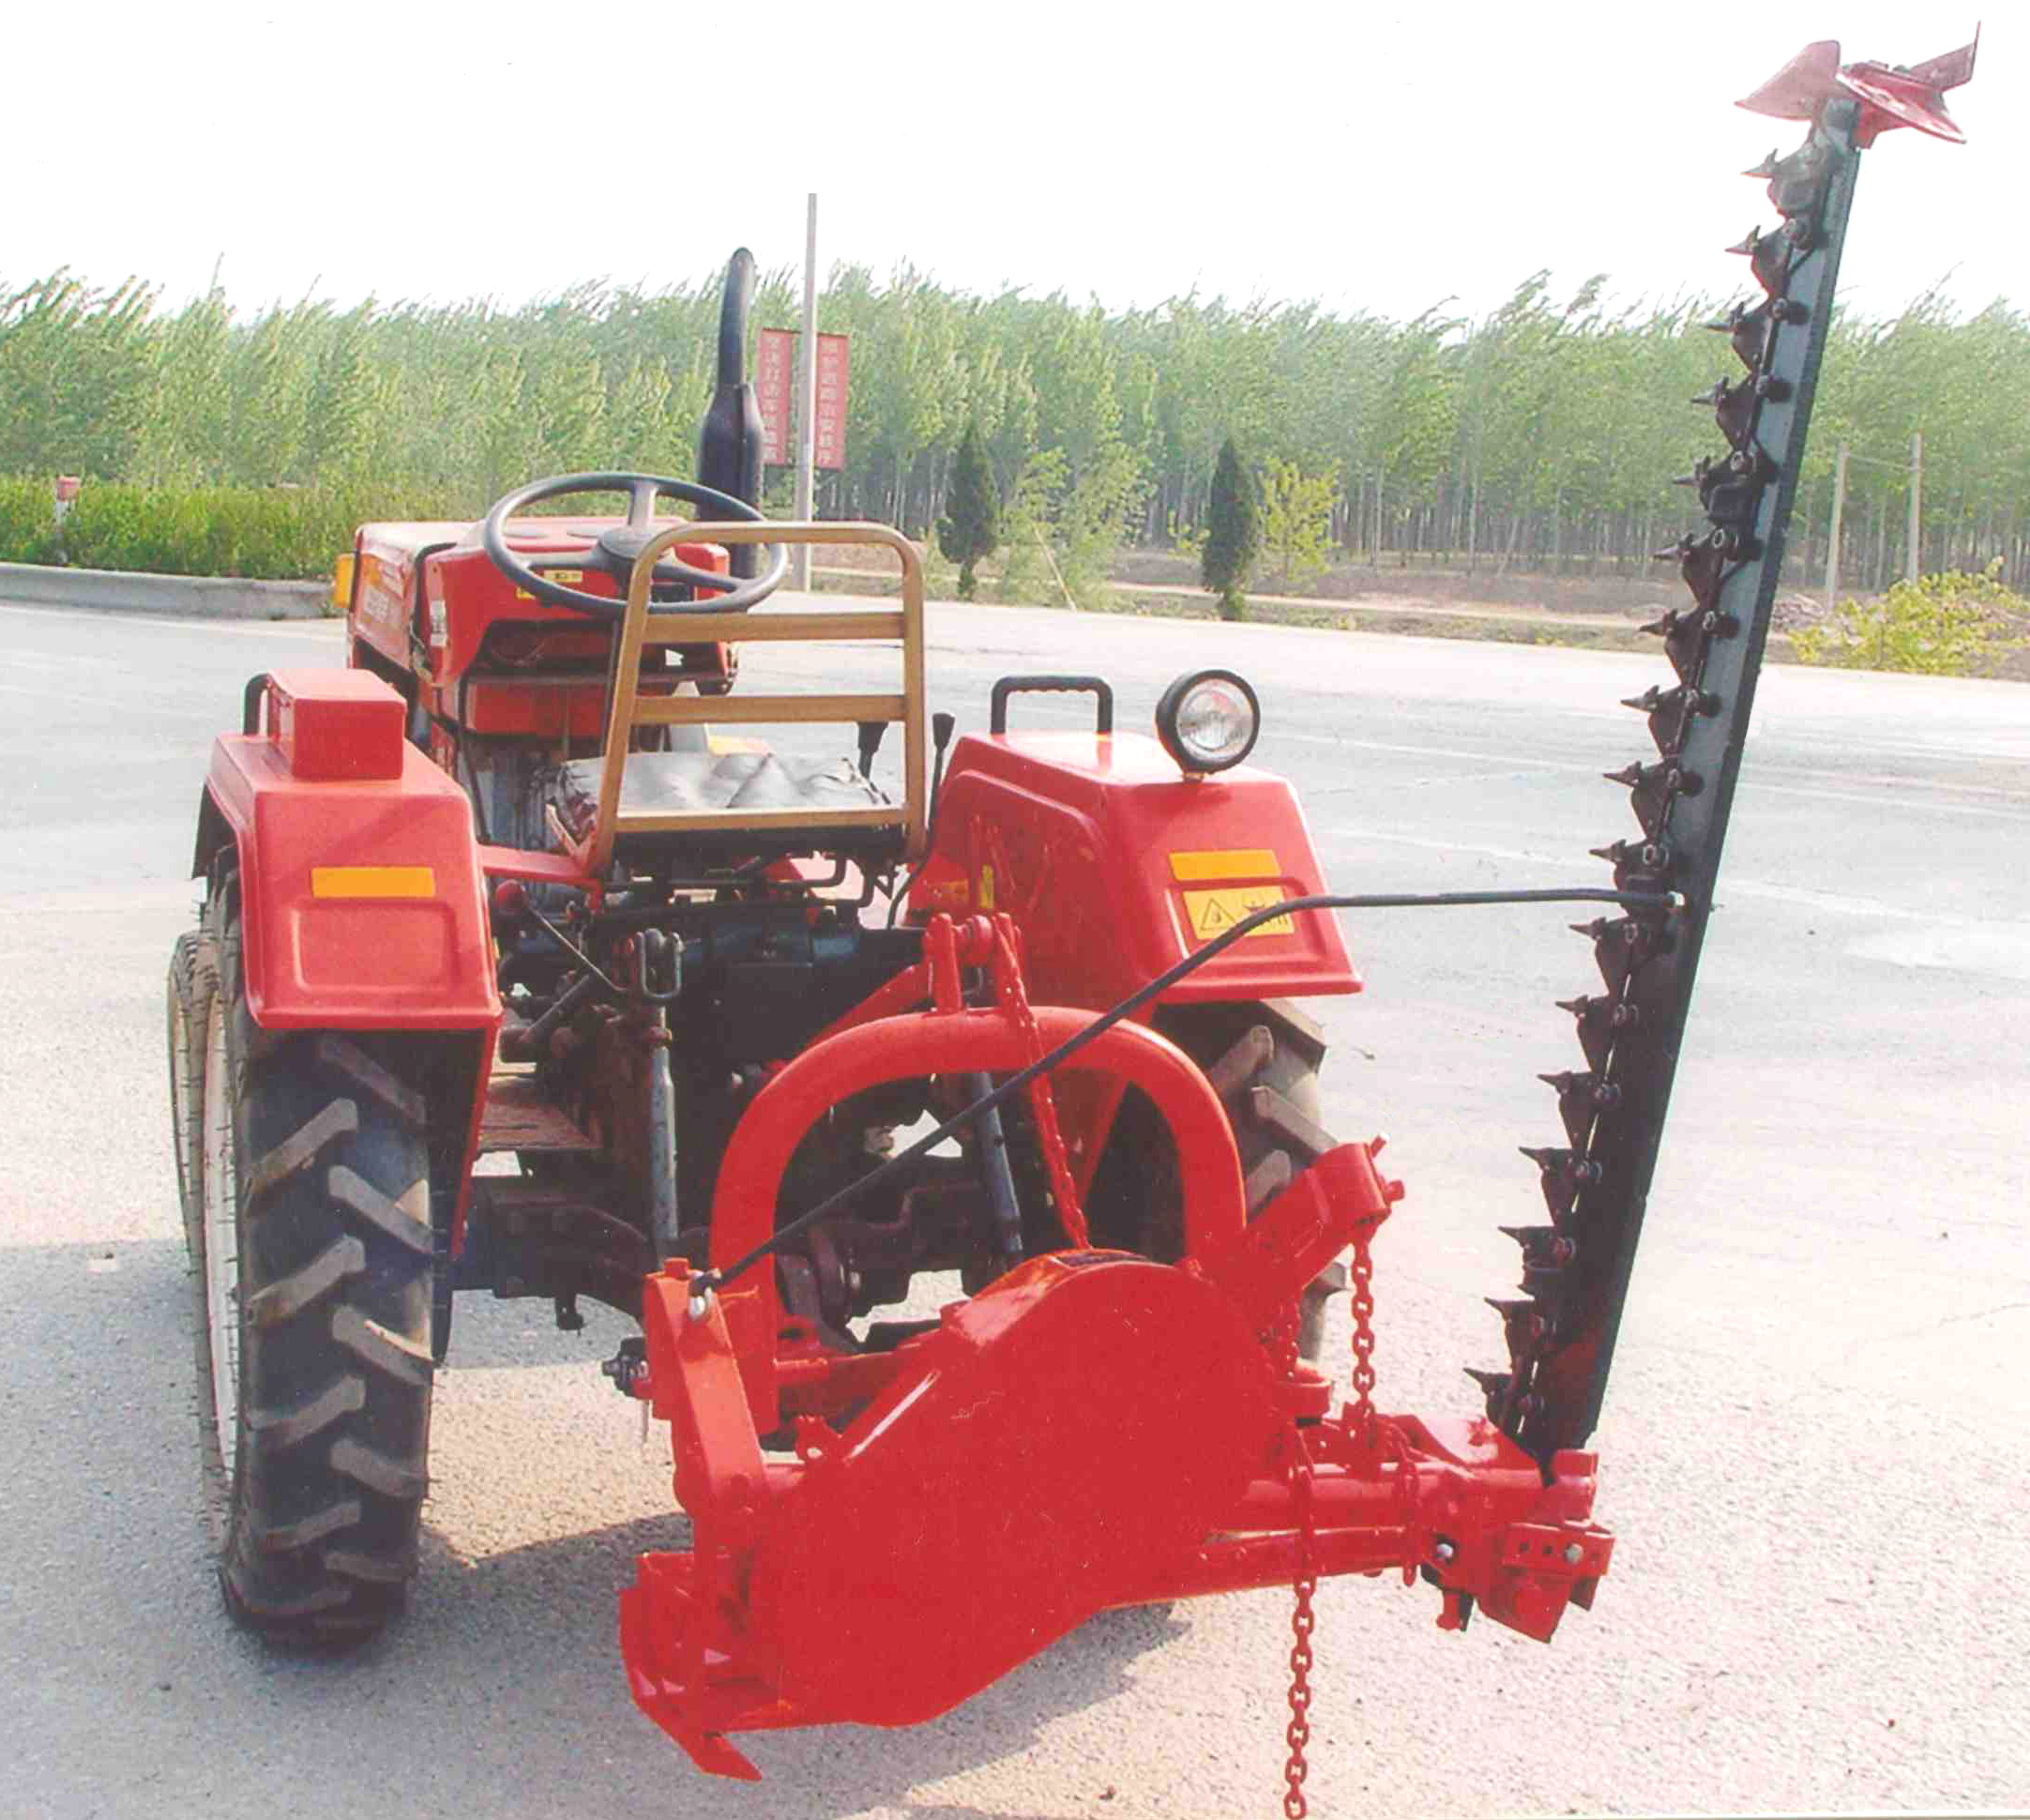 9G Series of mower